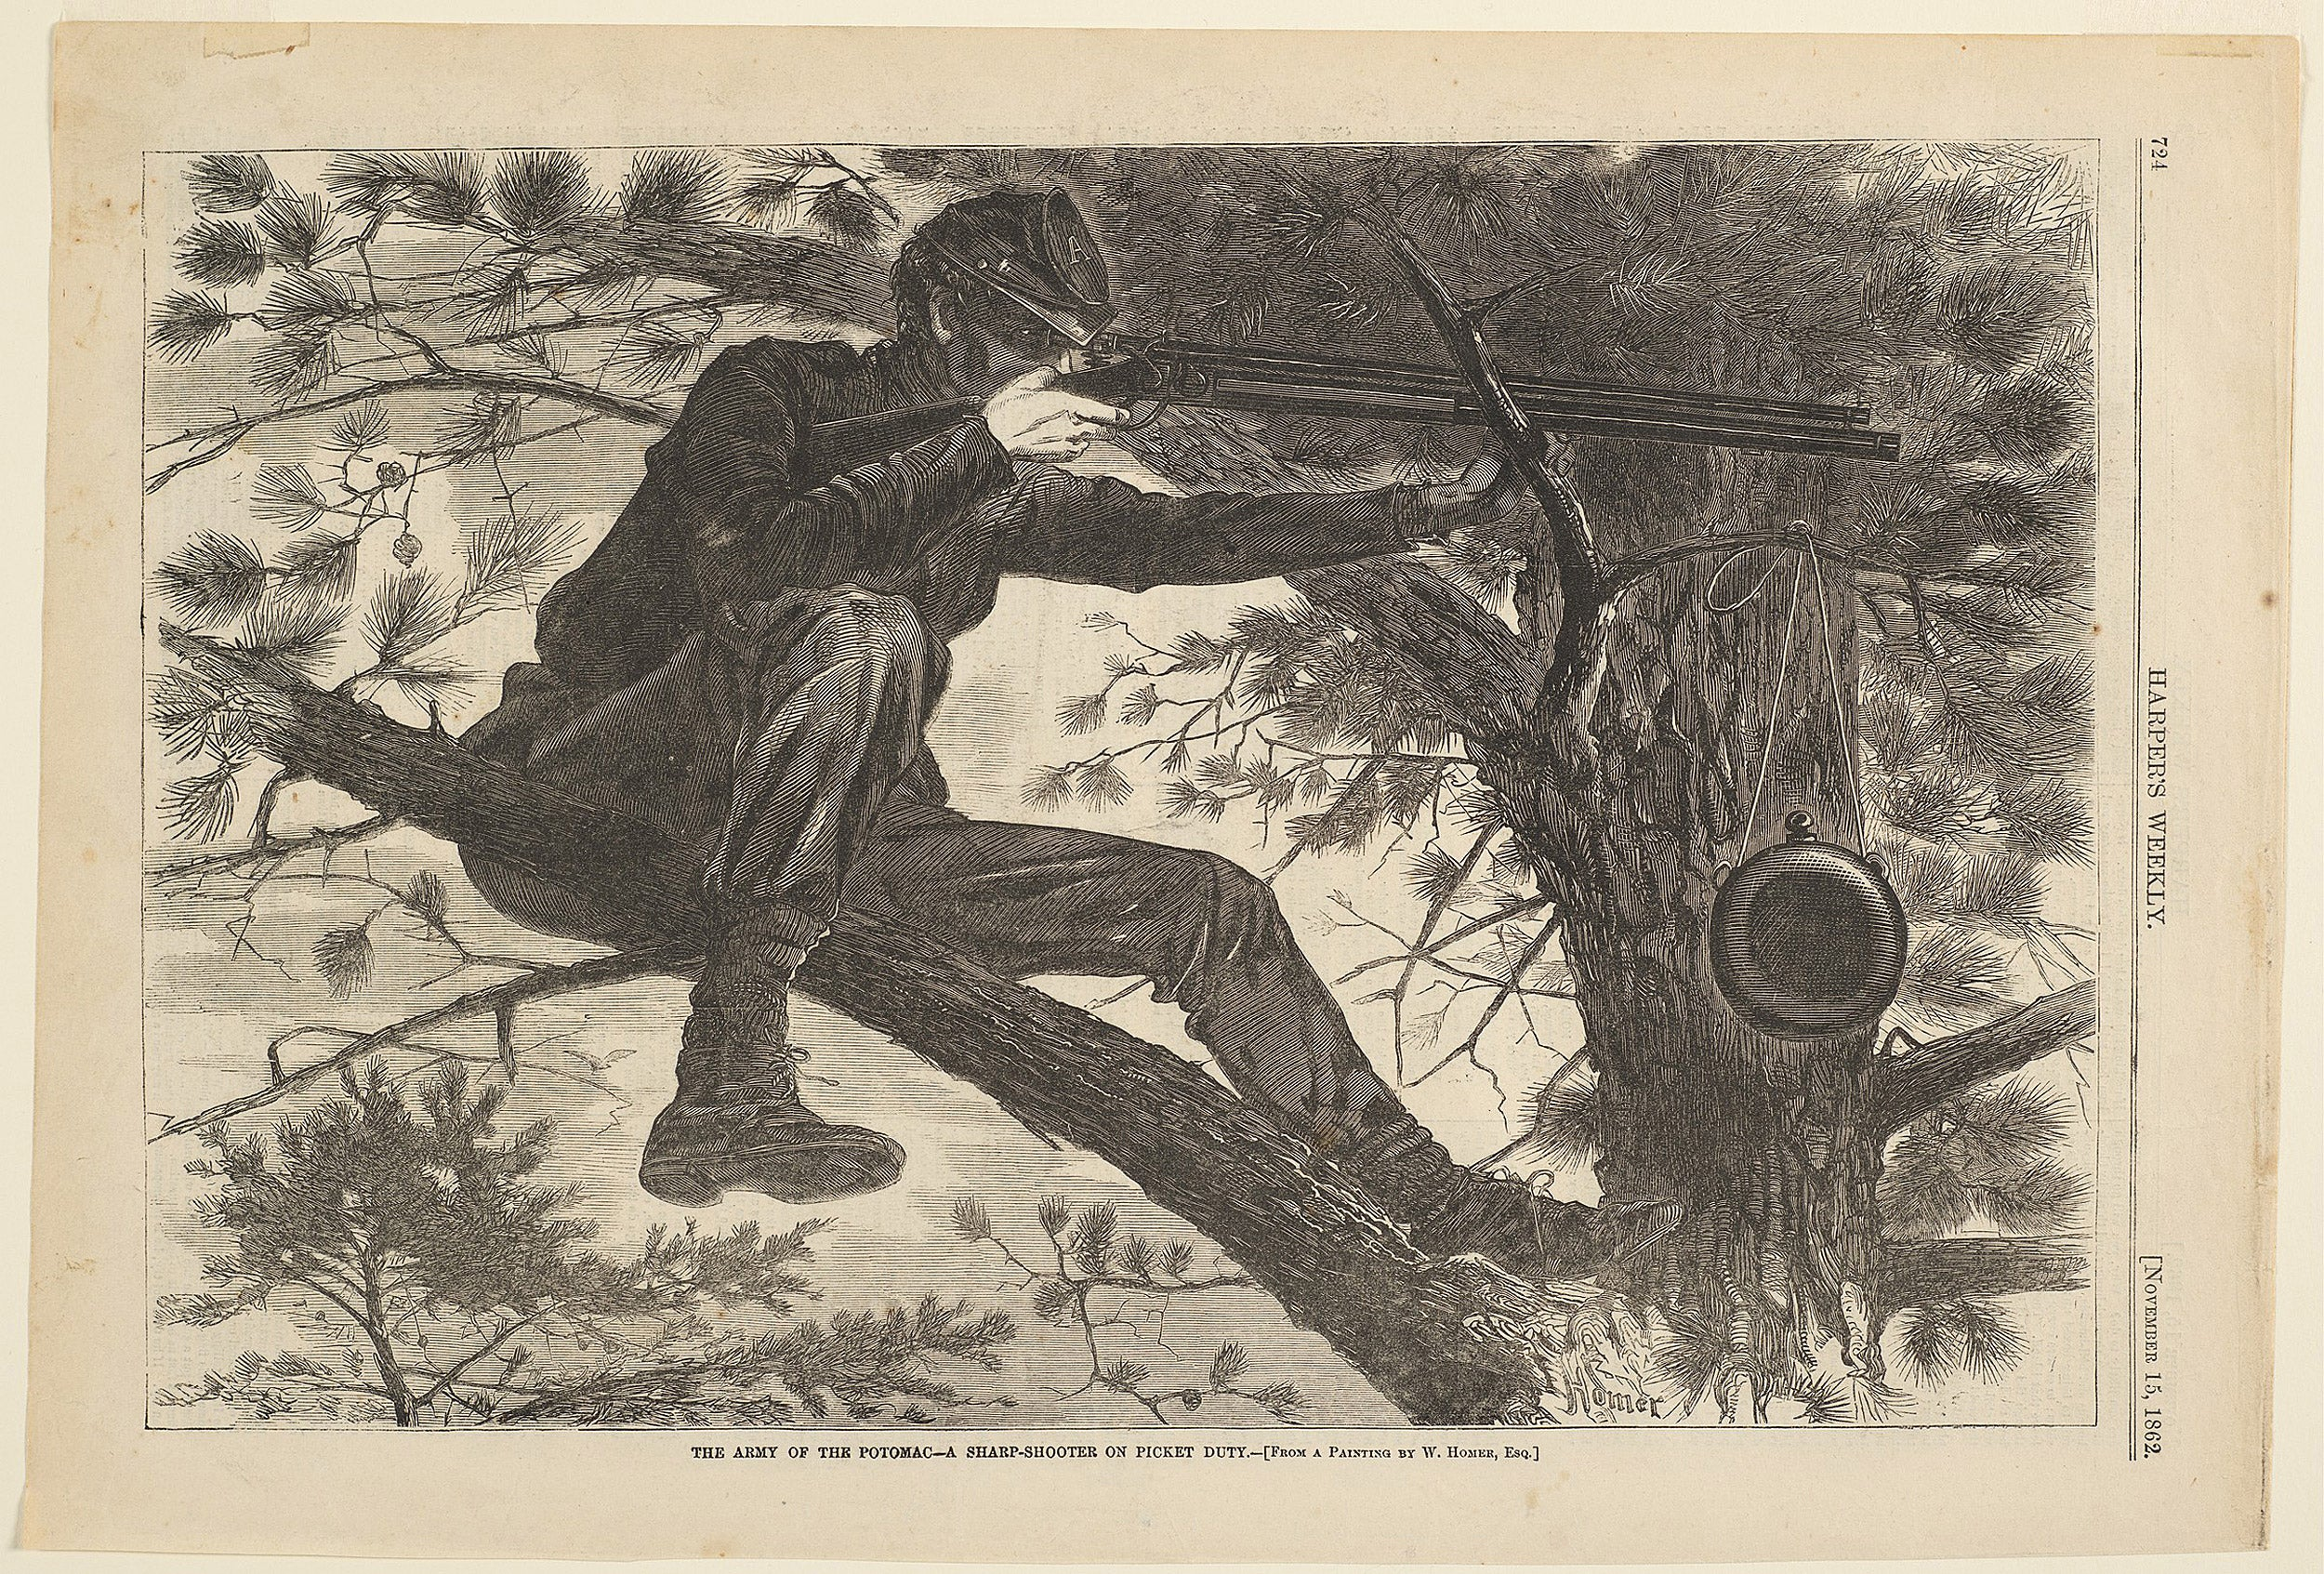 Winslow Homer's Sharpshooter